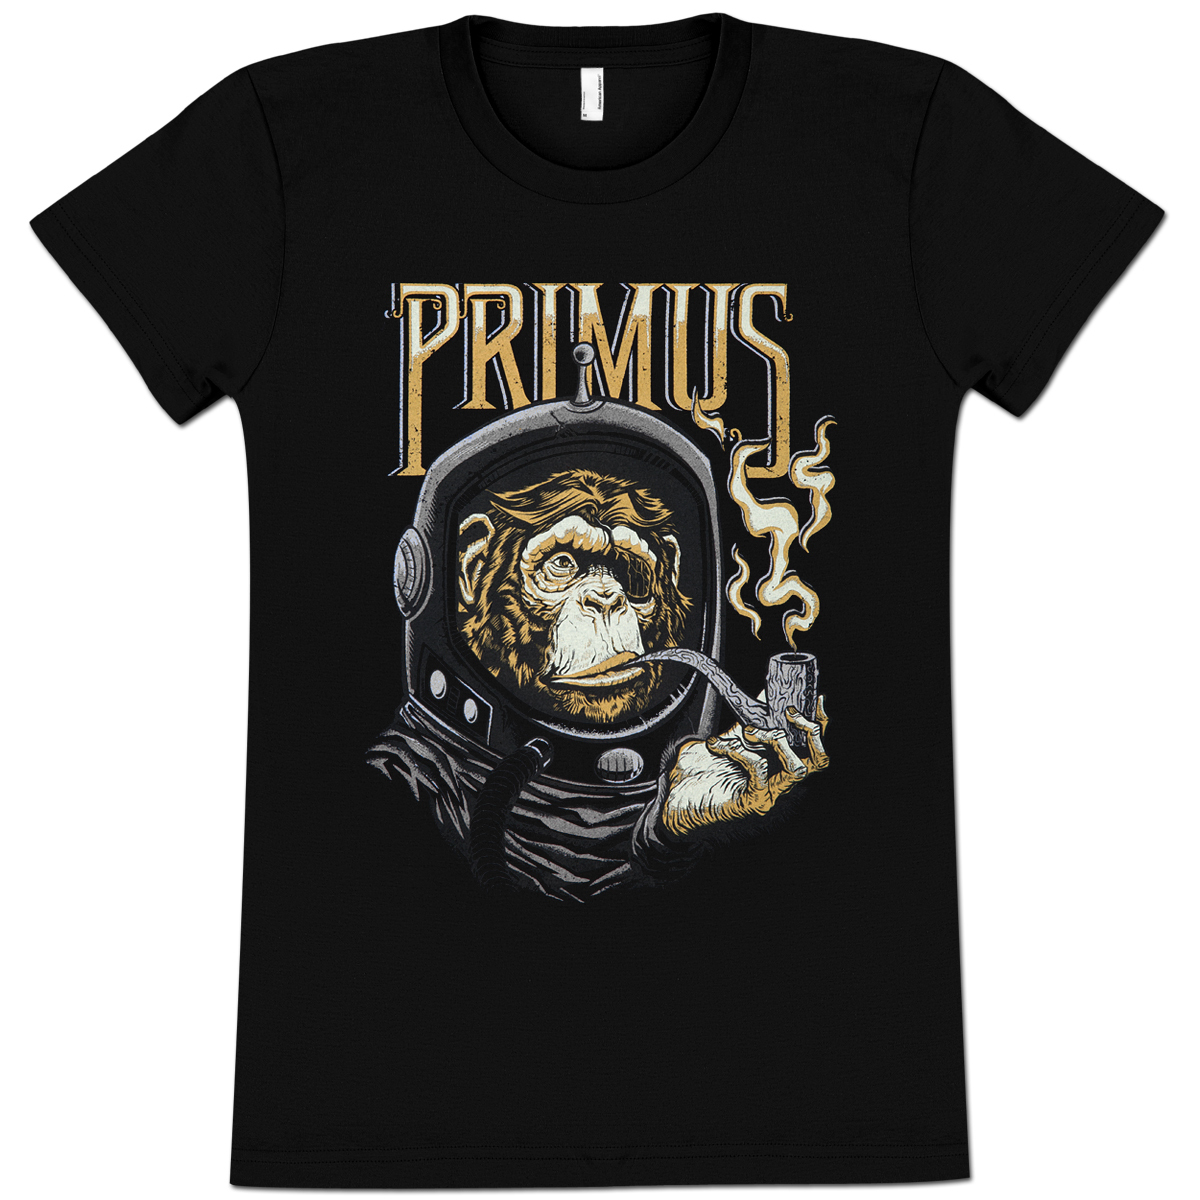 Primus Astro Monkey Ladies Tee